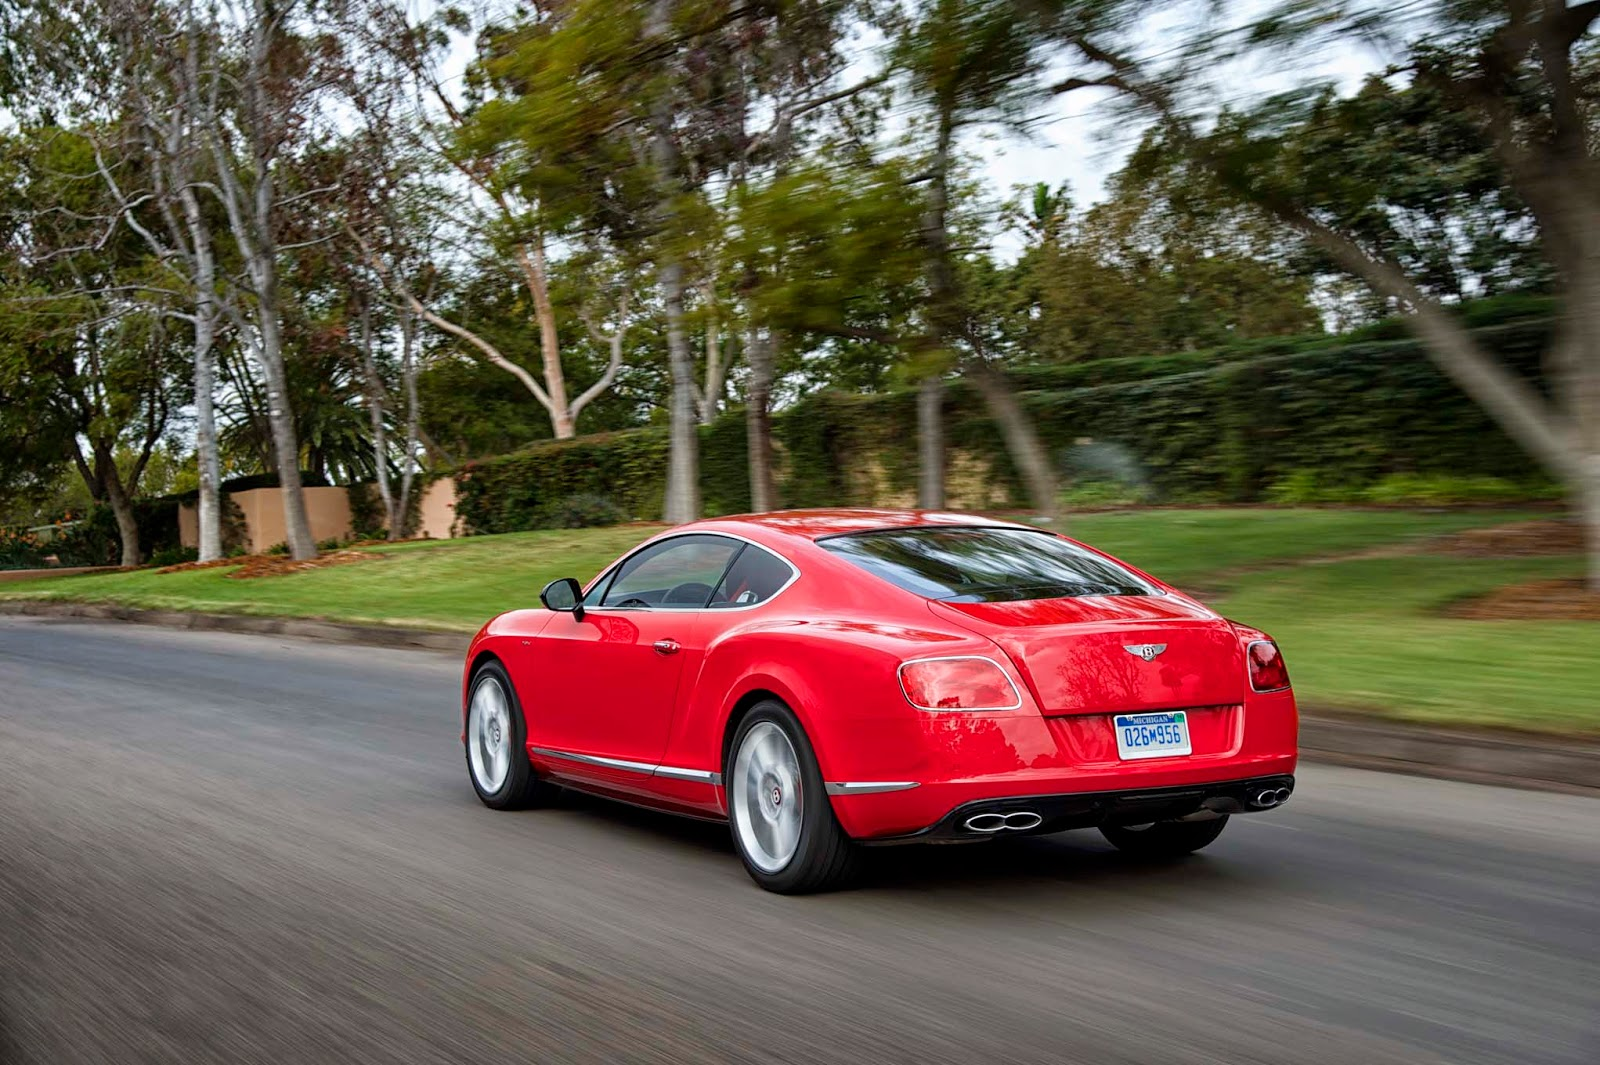 2014 Bentley Continental GT V8 S Wallpaper